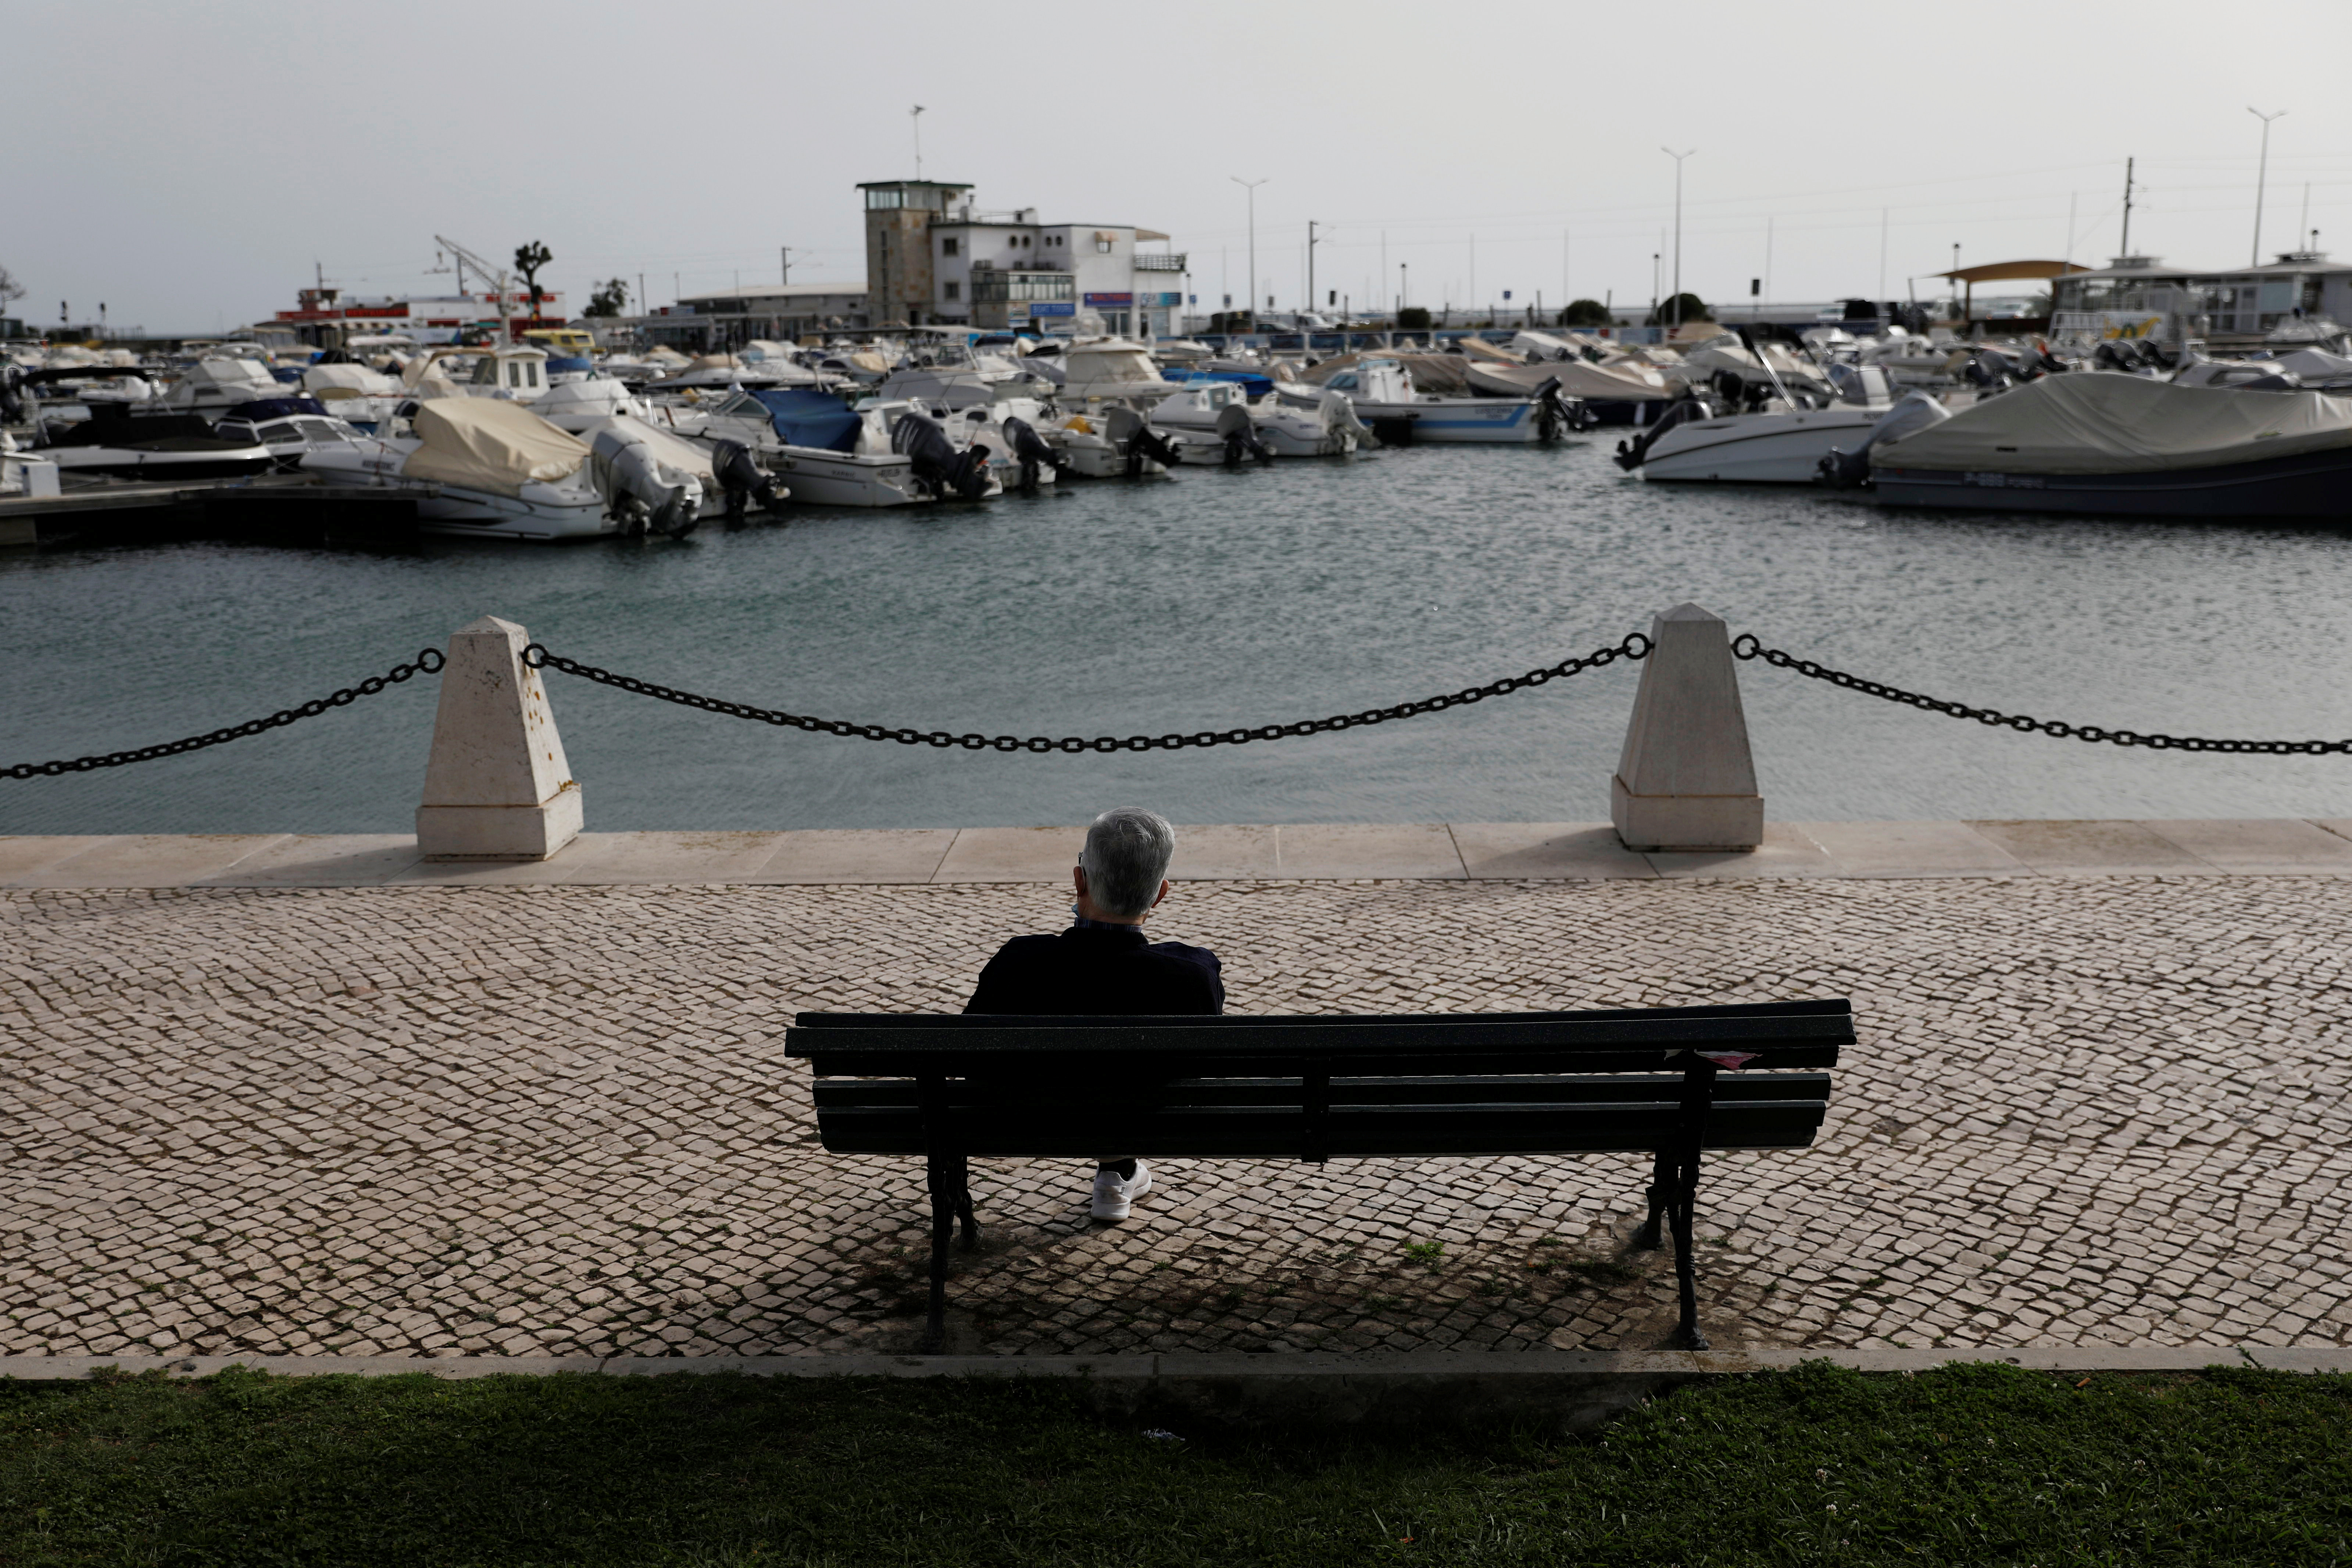 A man is seated in a bench at Faro marine, during the coronavirus disease (COVID-19) pandemic in Faro, Portugal, March 30, 2021. Picture taken March 30, 2021. REUTERS/Pedro Nunes